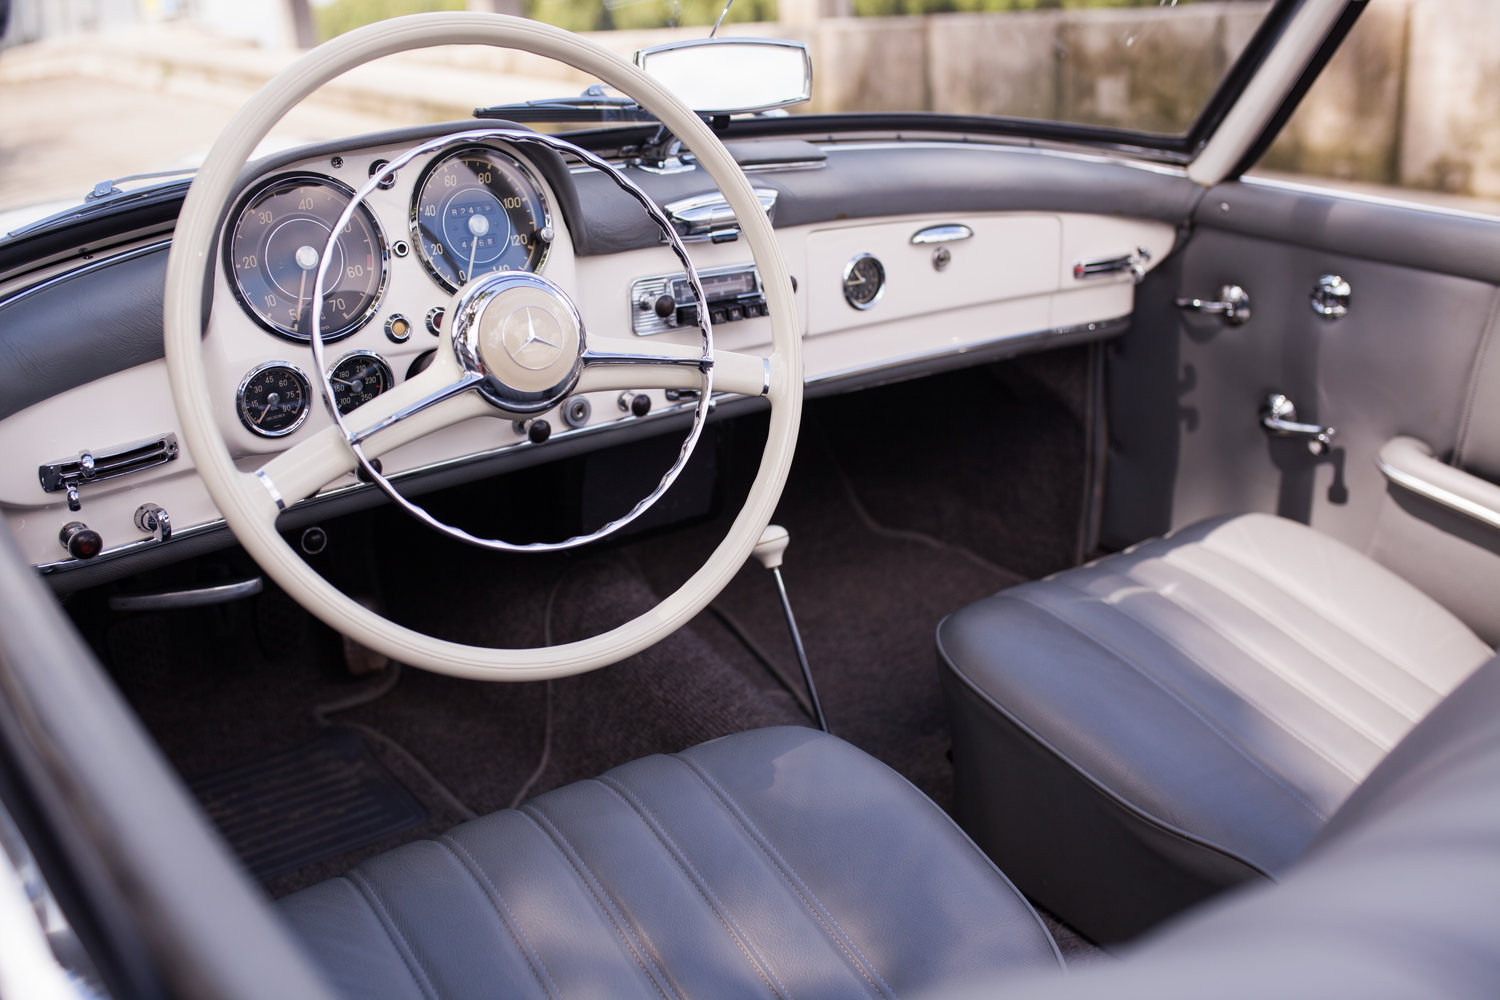 1957 Mercedes-Benz 190SL - Superb Condition and Originality For Sale (picture 4 of 6)